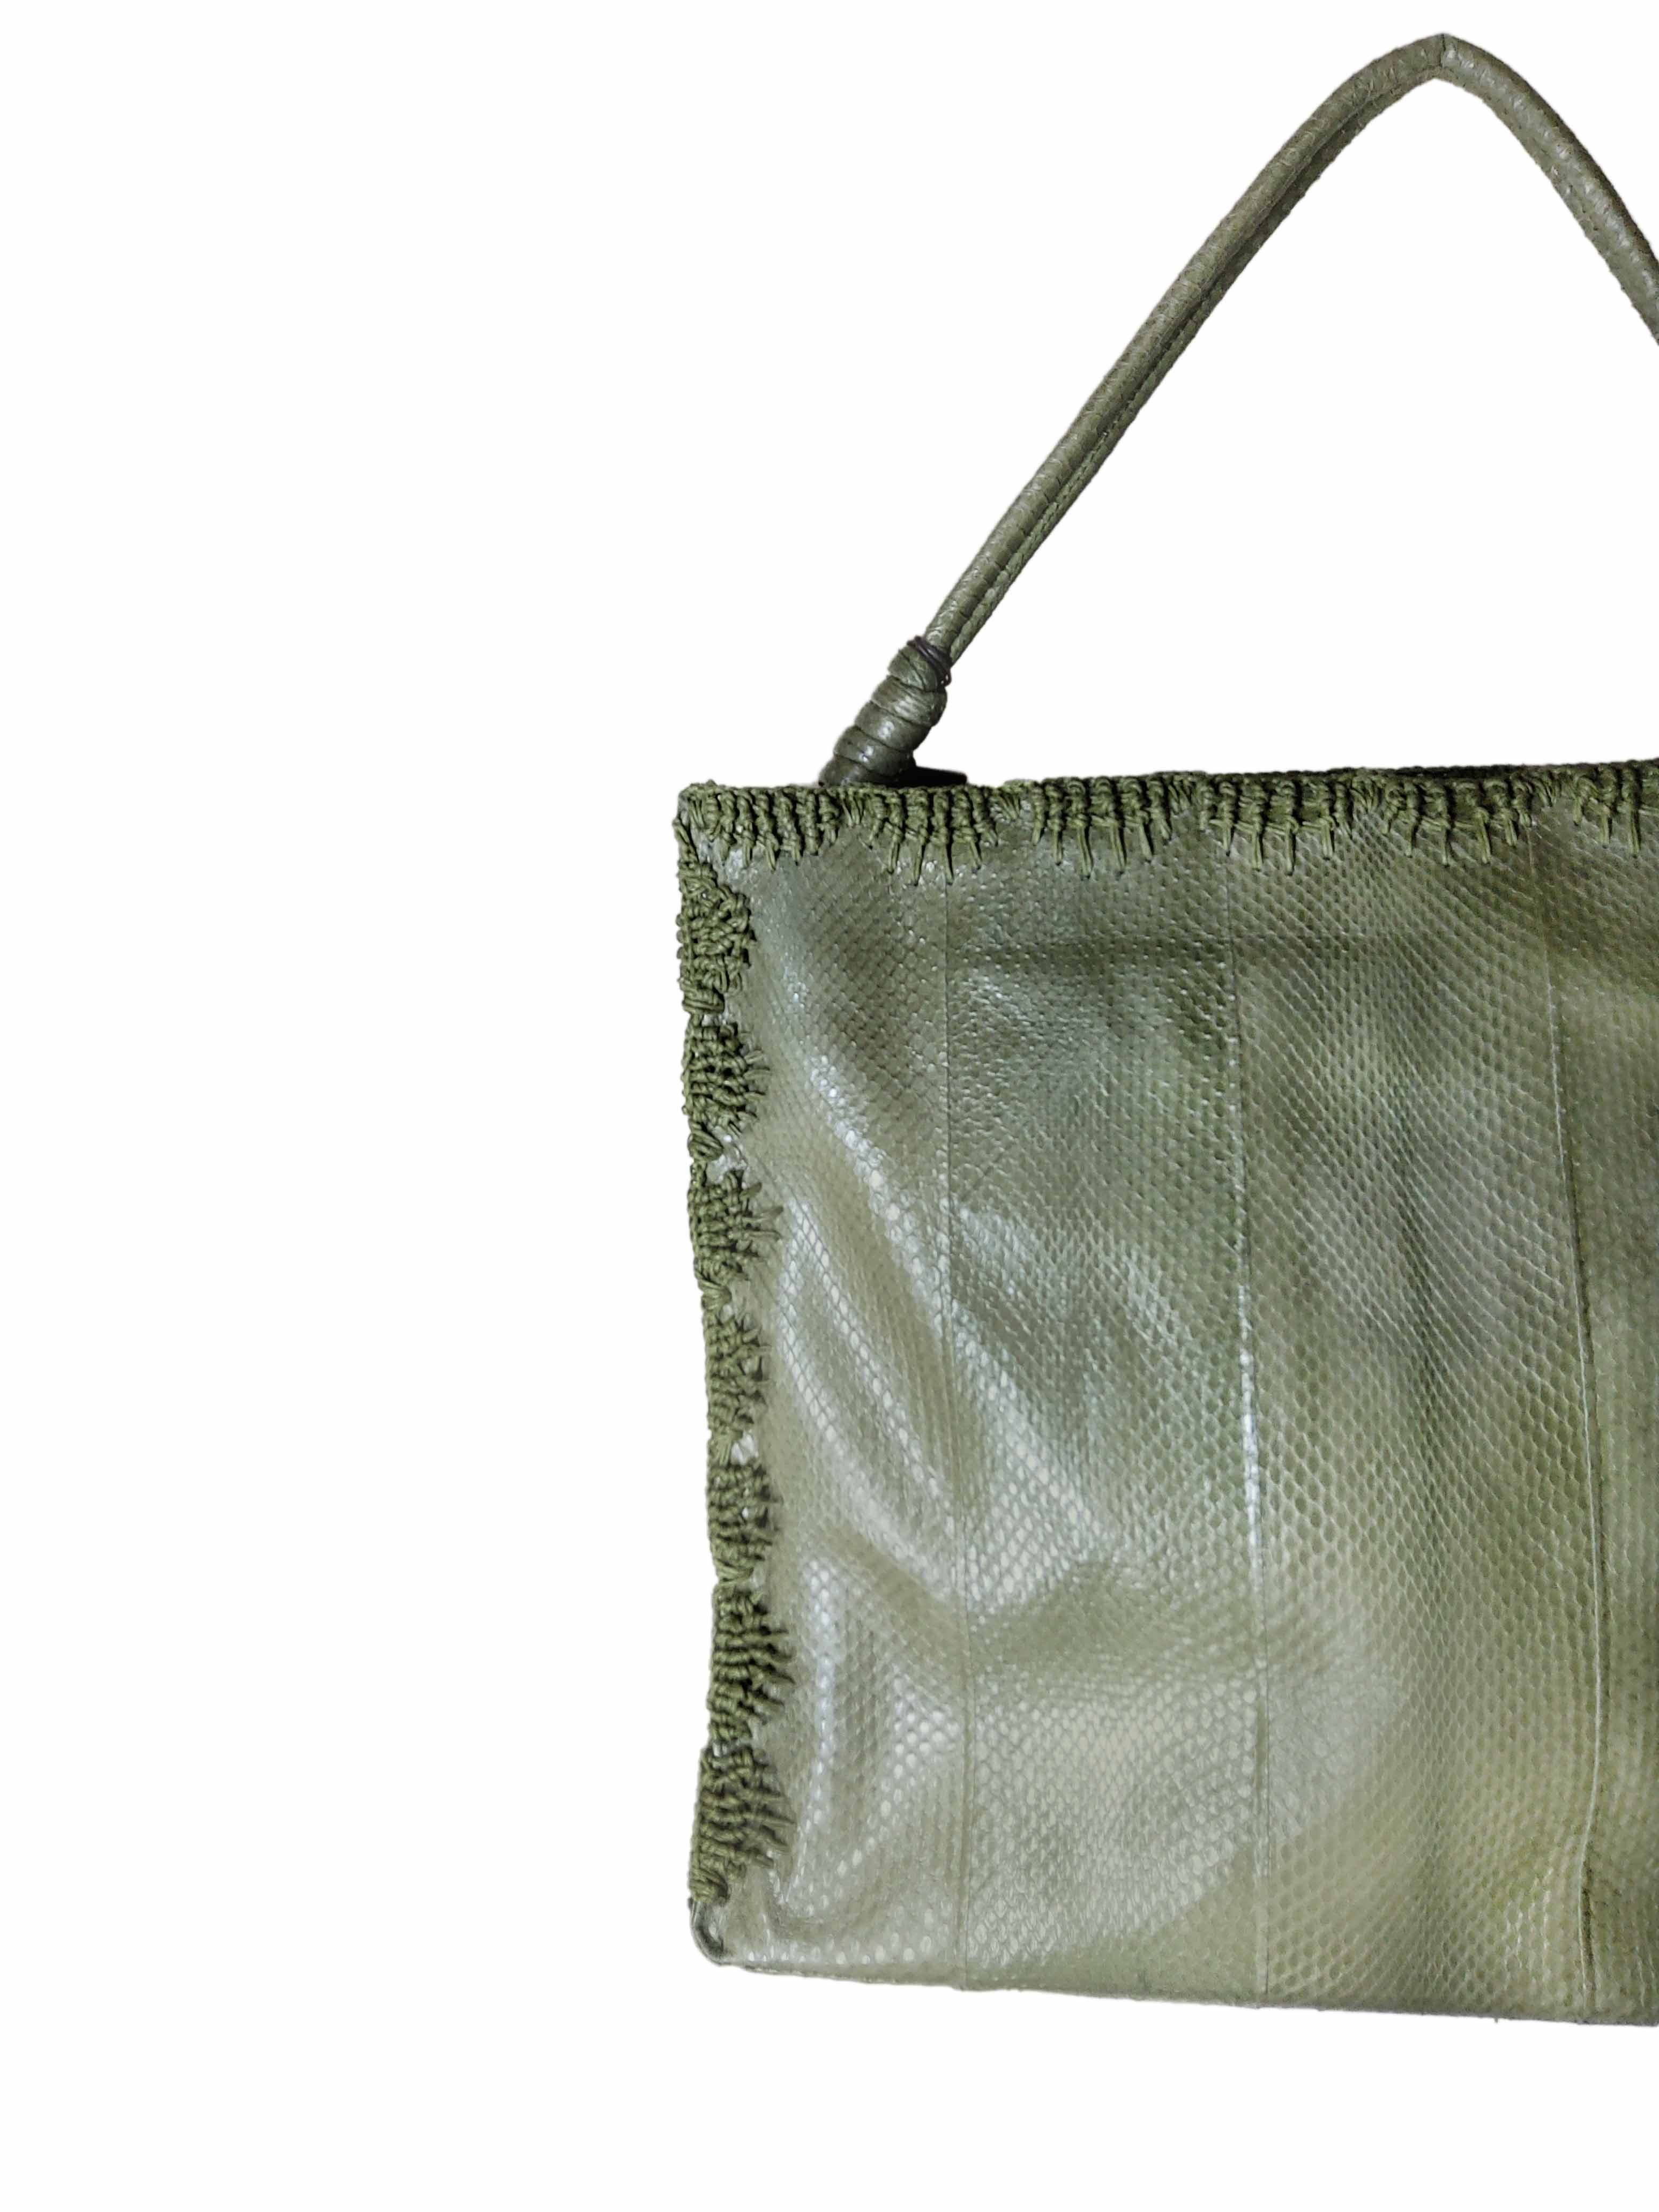 Large Woman Handbag Exotic Crochet in Green Wips with Matching Stitching Maliparmi | Bags and backpacks | BI00220143860010